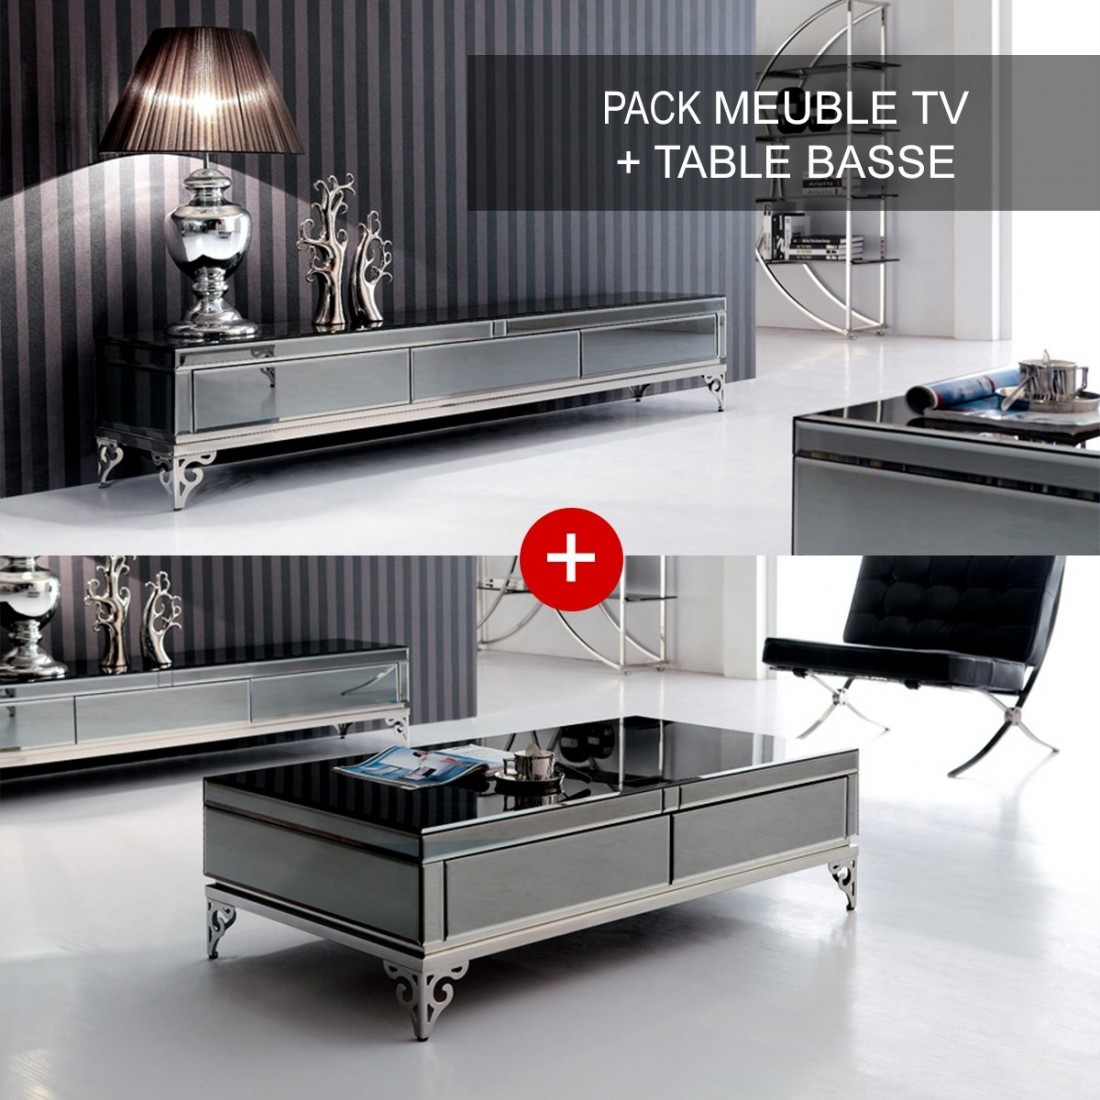 beste von ensemble meuble tv table basse id es de conception de table basse. Black Bedroom Furniture Sets. Home Design Ideas